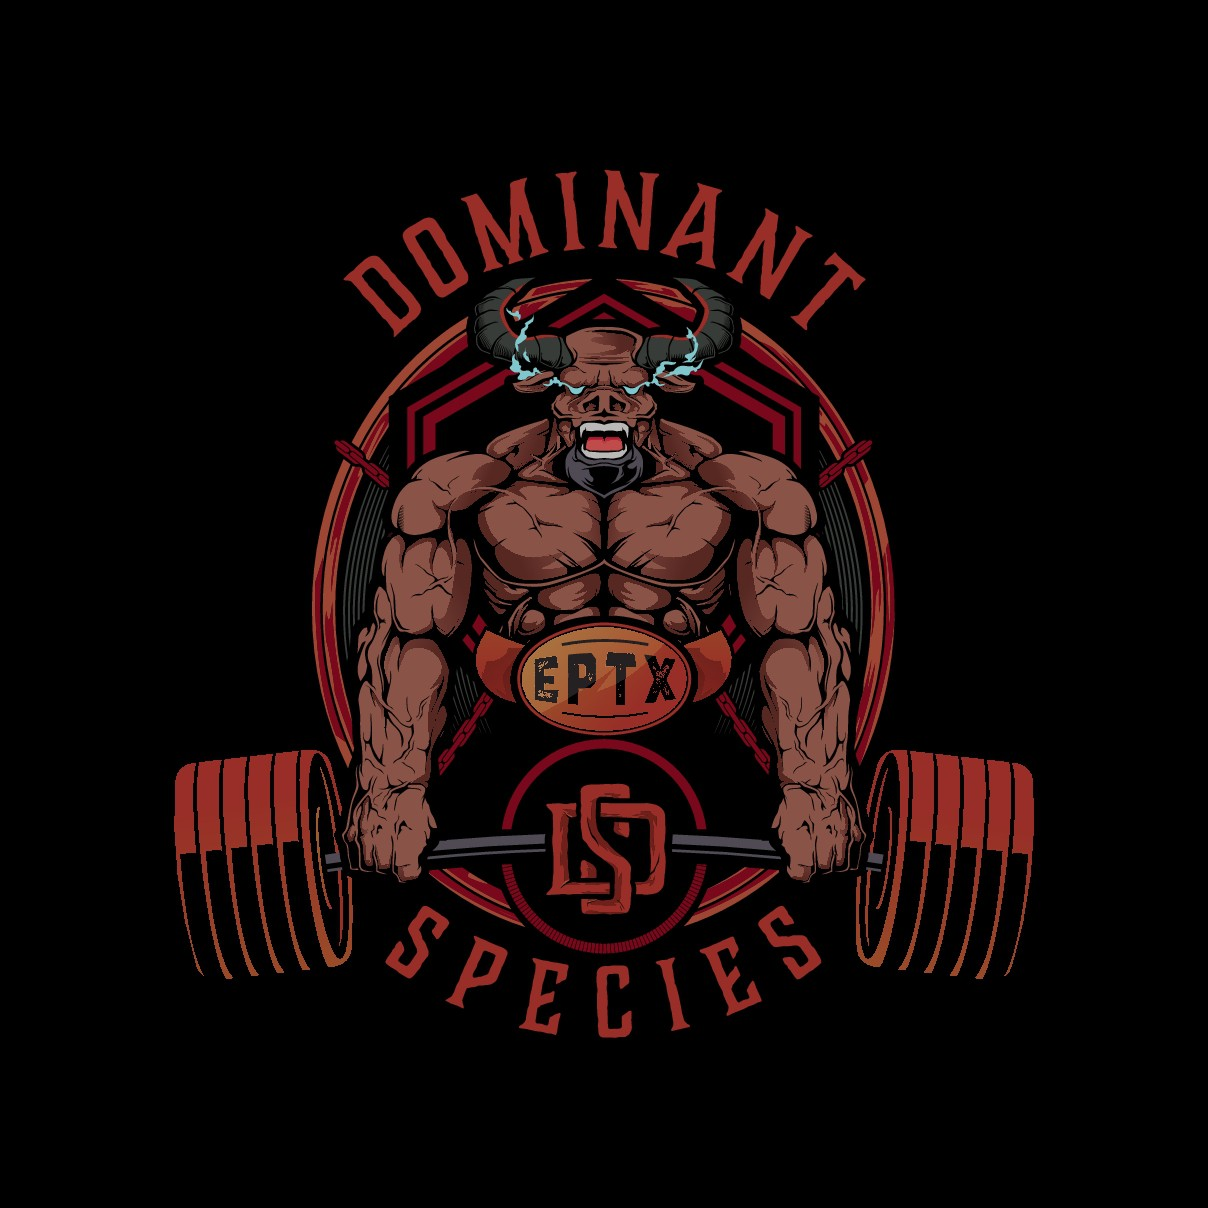 Dominant species t shirt designs